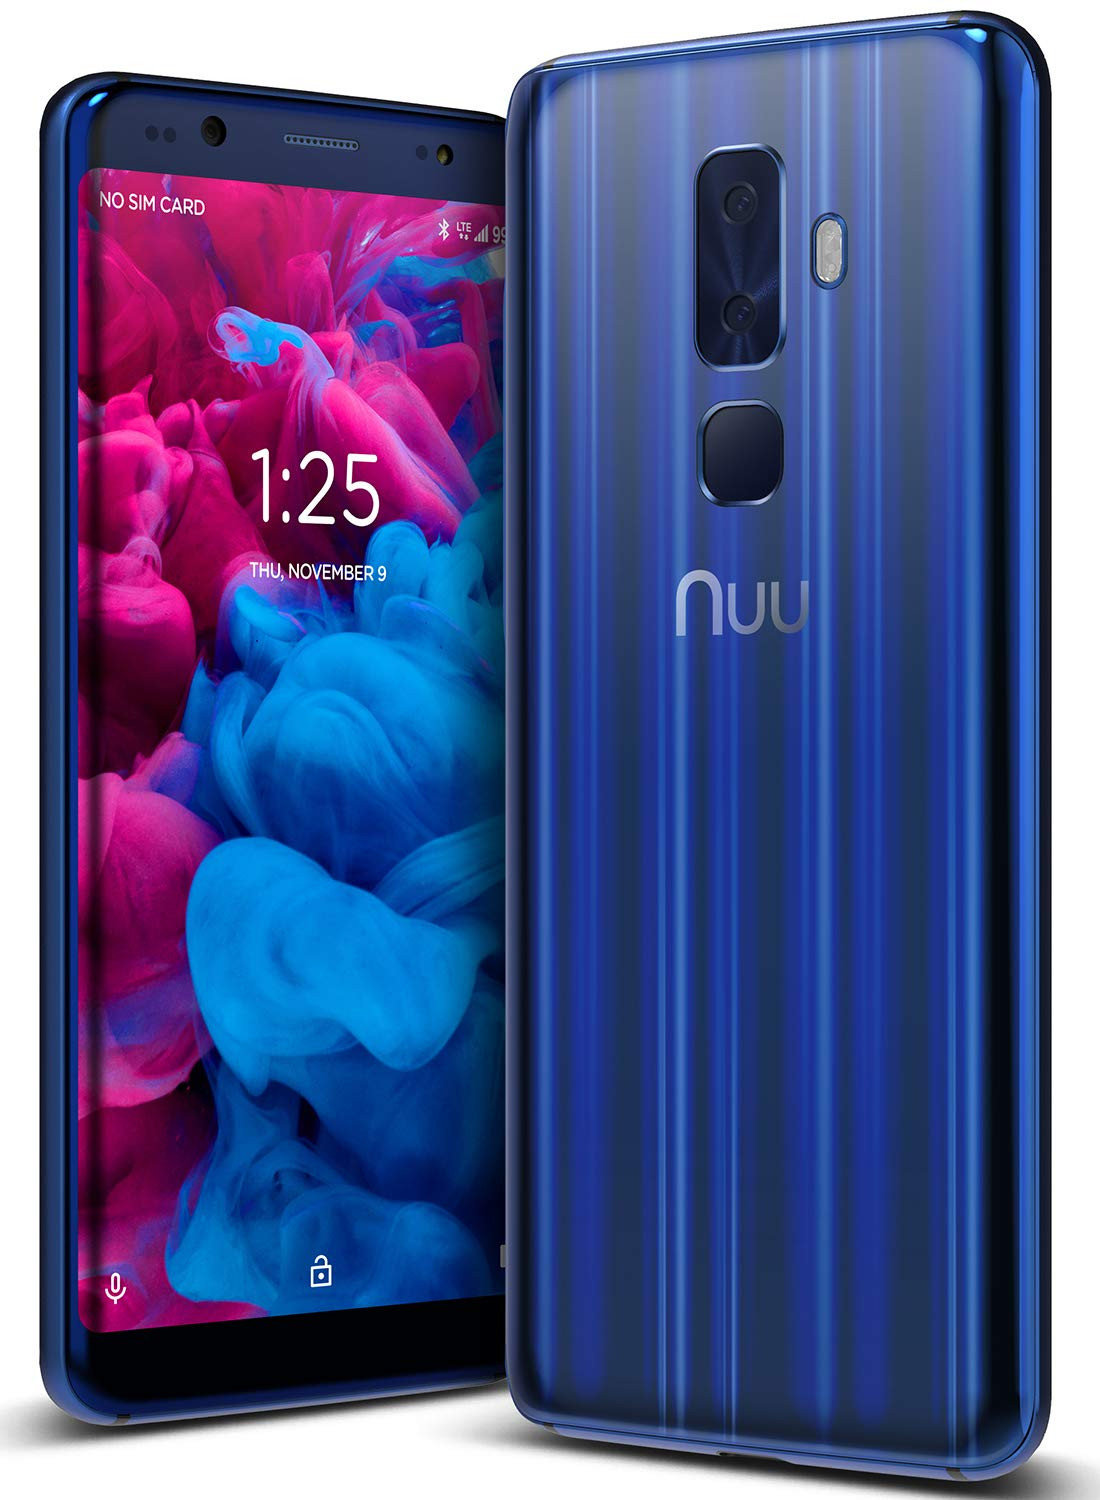 """NUU Mobile G3 Unlocked Cell Phone 64GB + 4GB RAM - 5.7"""" Android Smartphone - Sapphire Blue"""